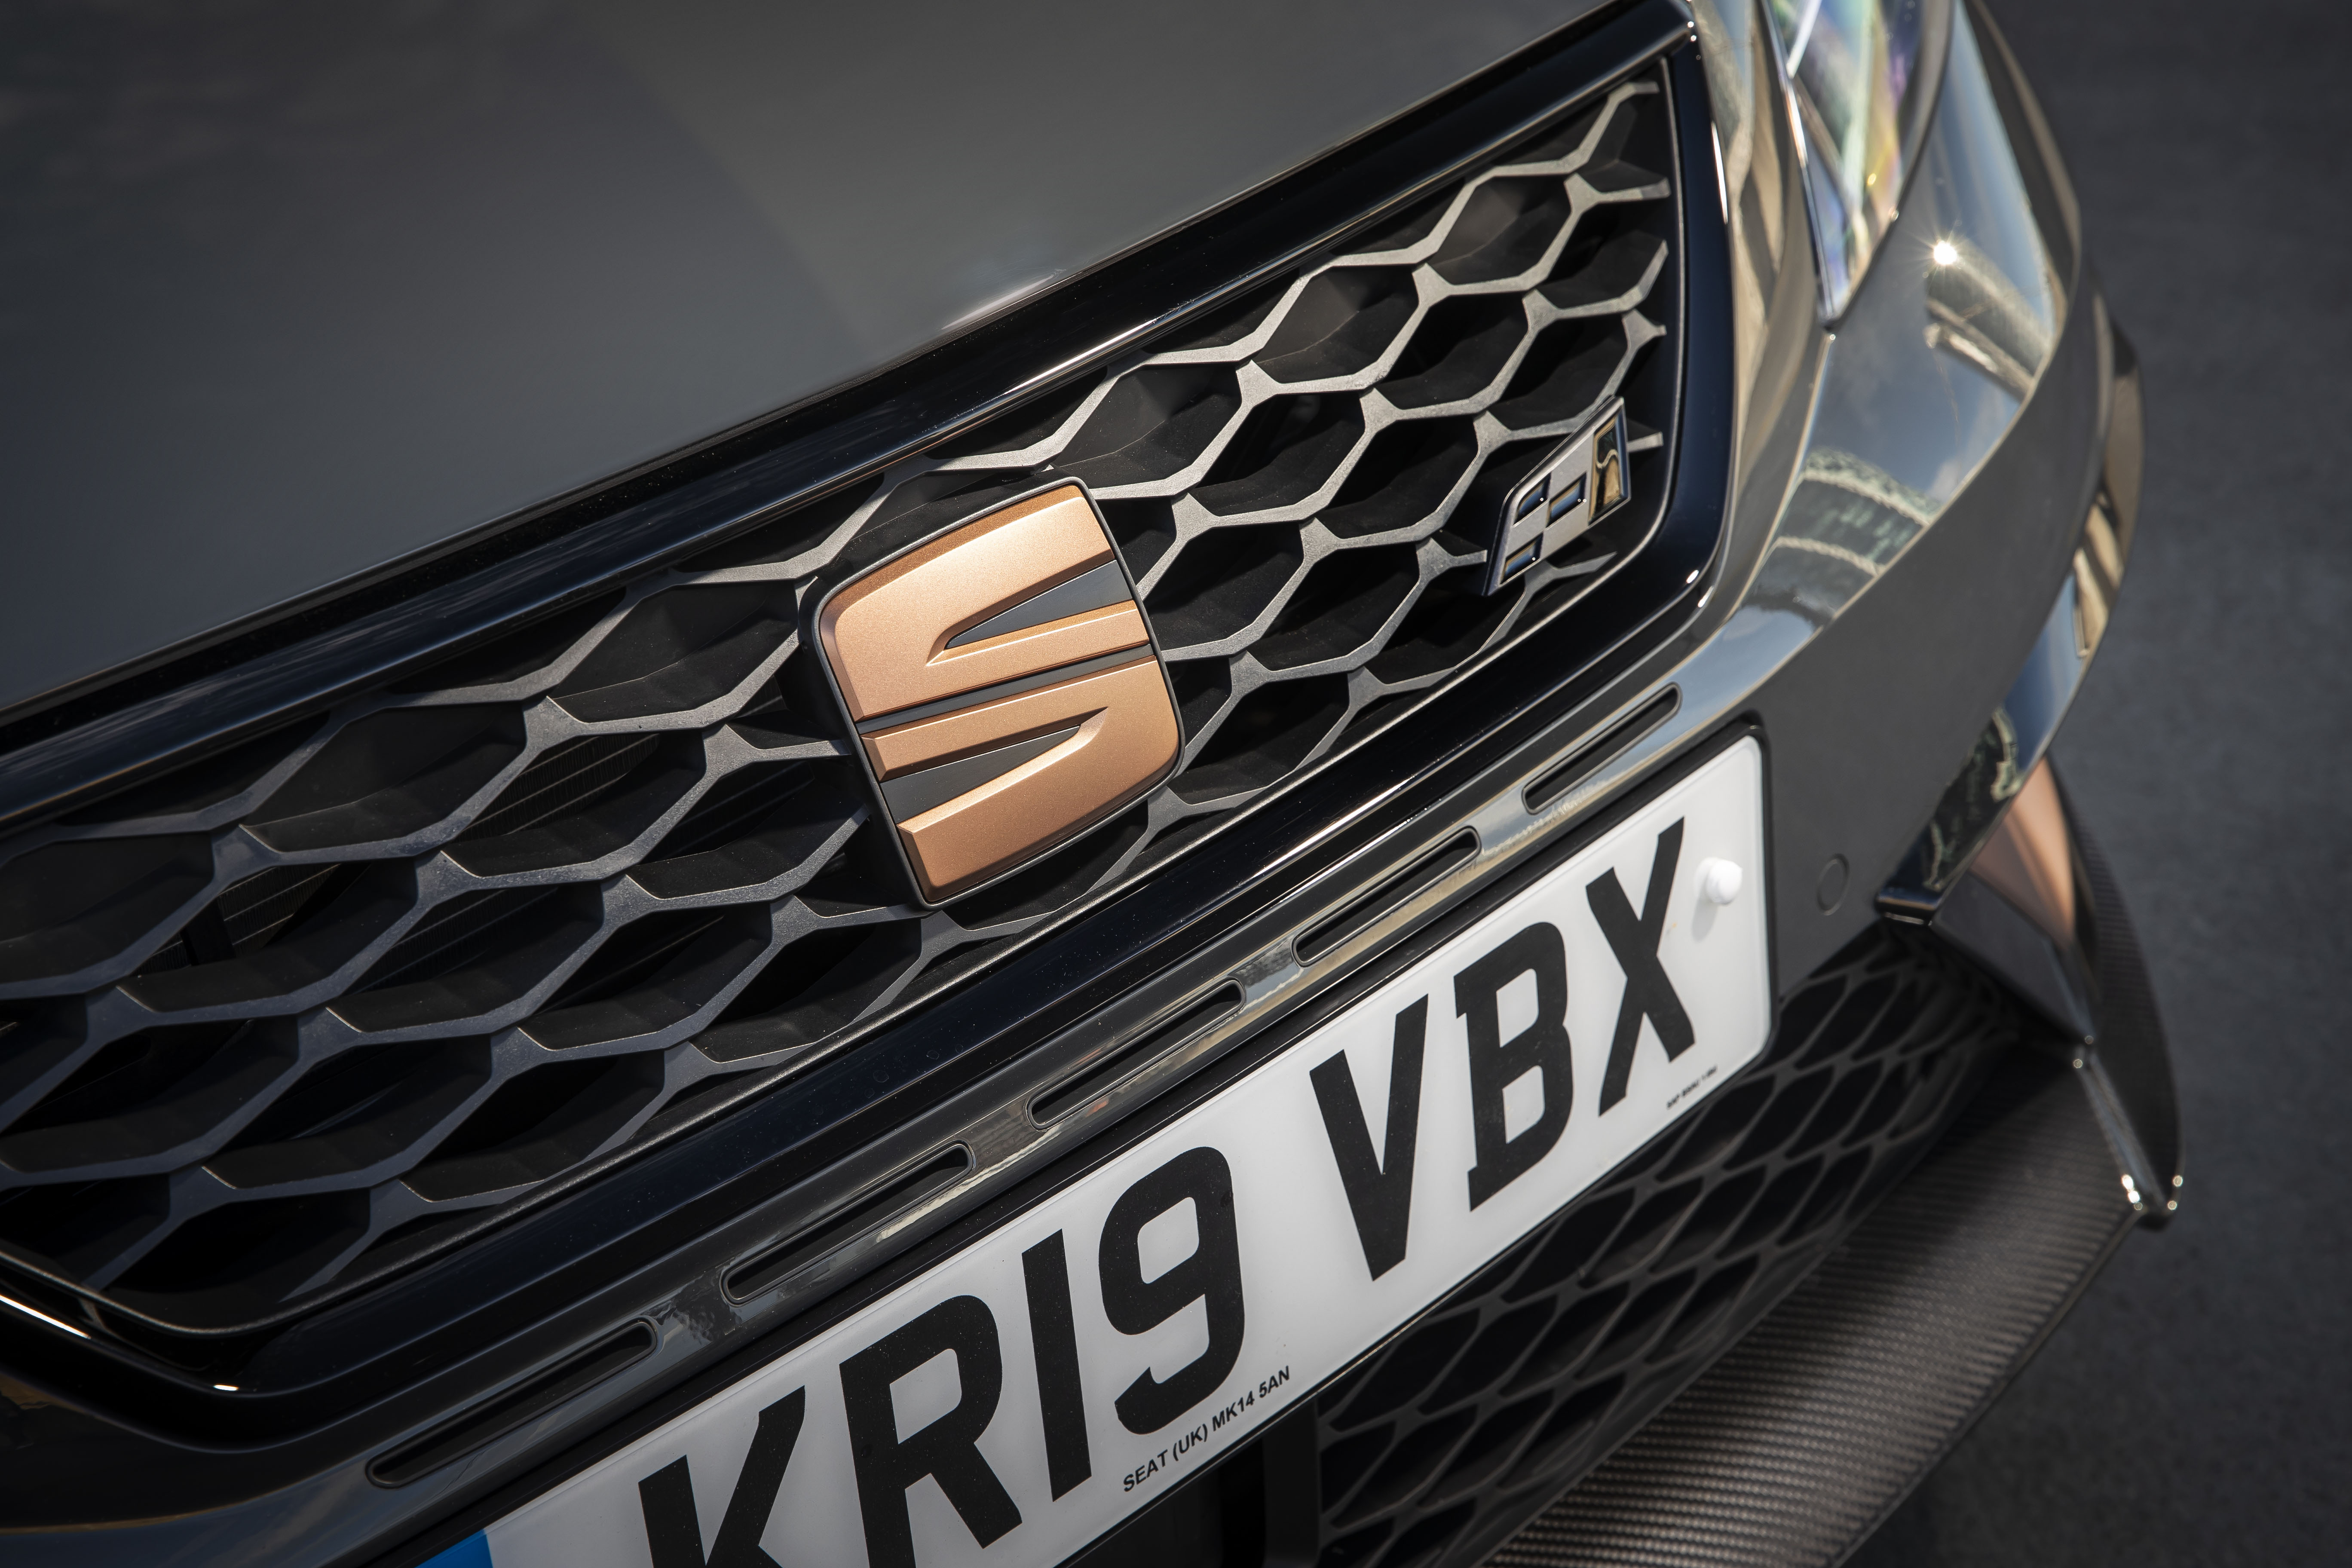 Even the Seat badge gets the bronze treatment